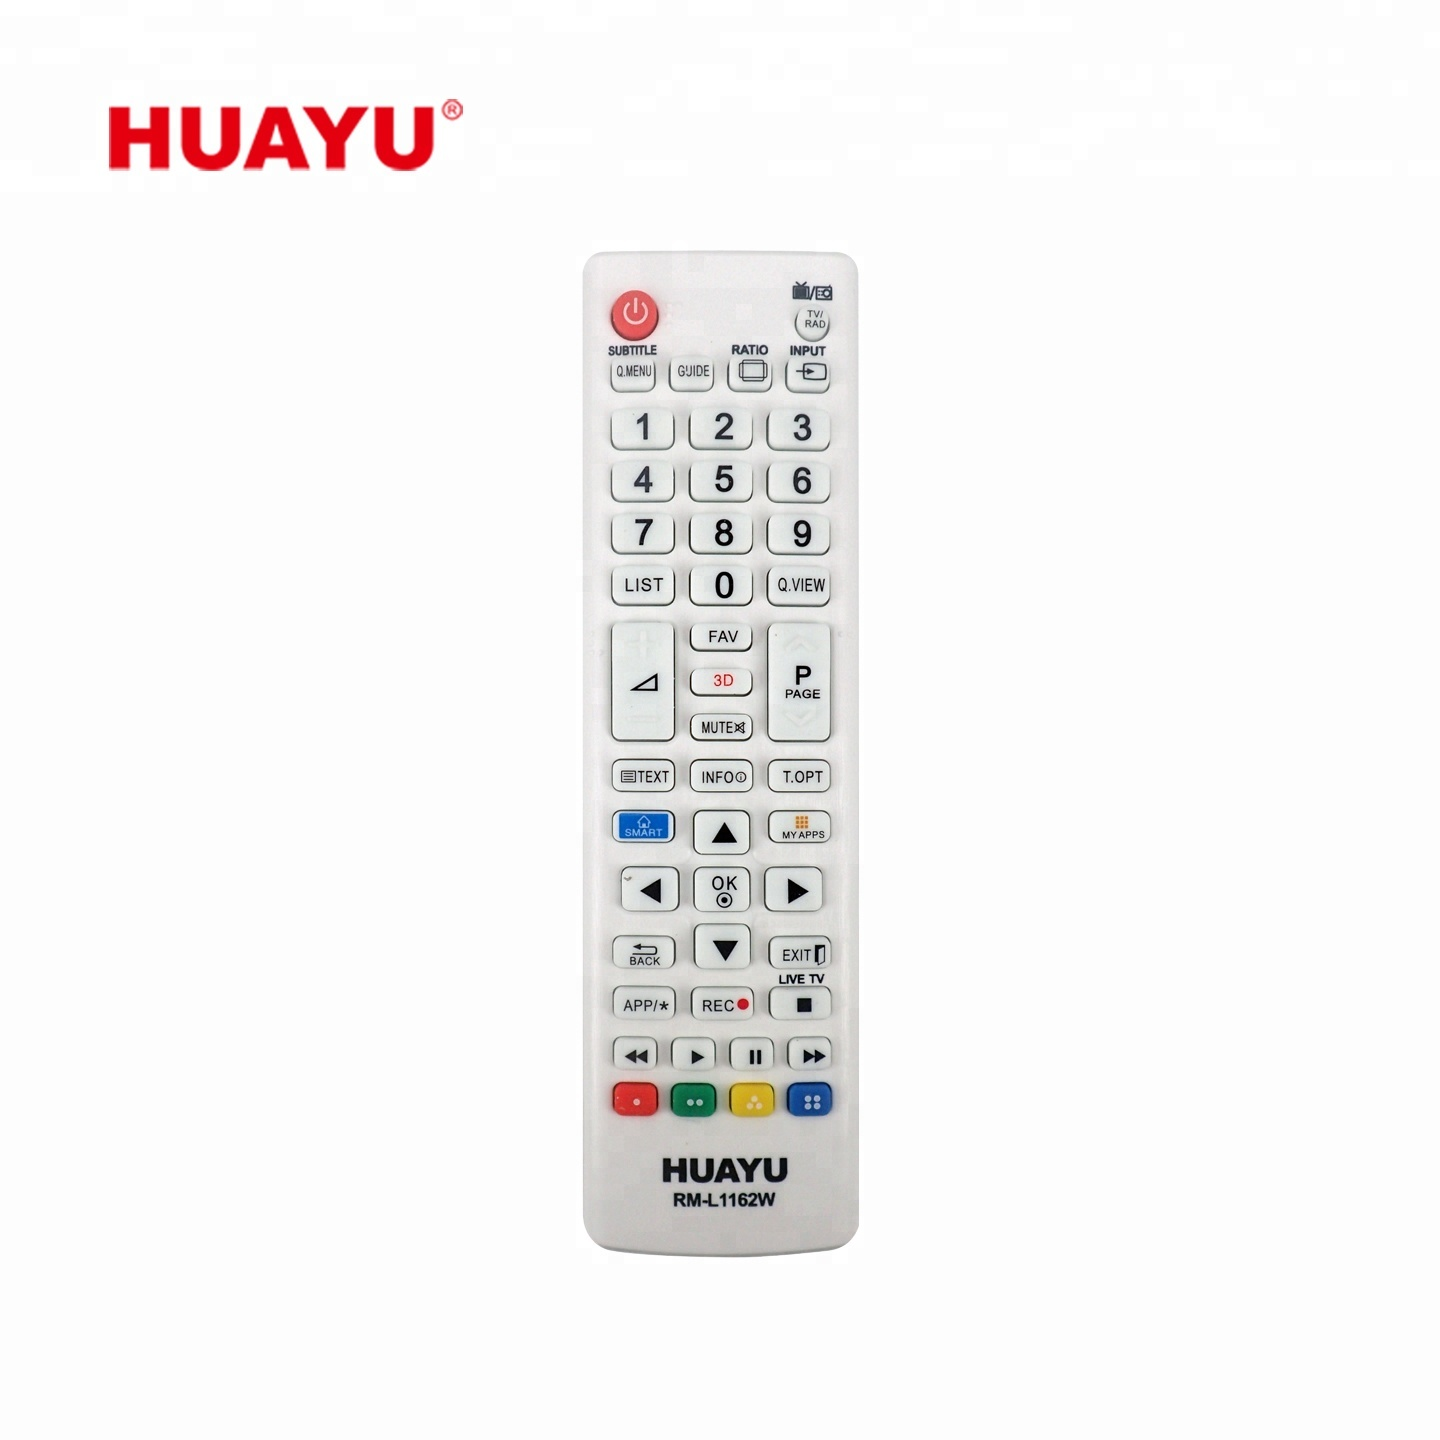 RM-L1162W HUAYU factory price newest universal 3D smart TV remote control  controller use for LG LCD / LED / HDTV, View remote control use for LG,